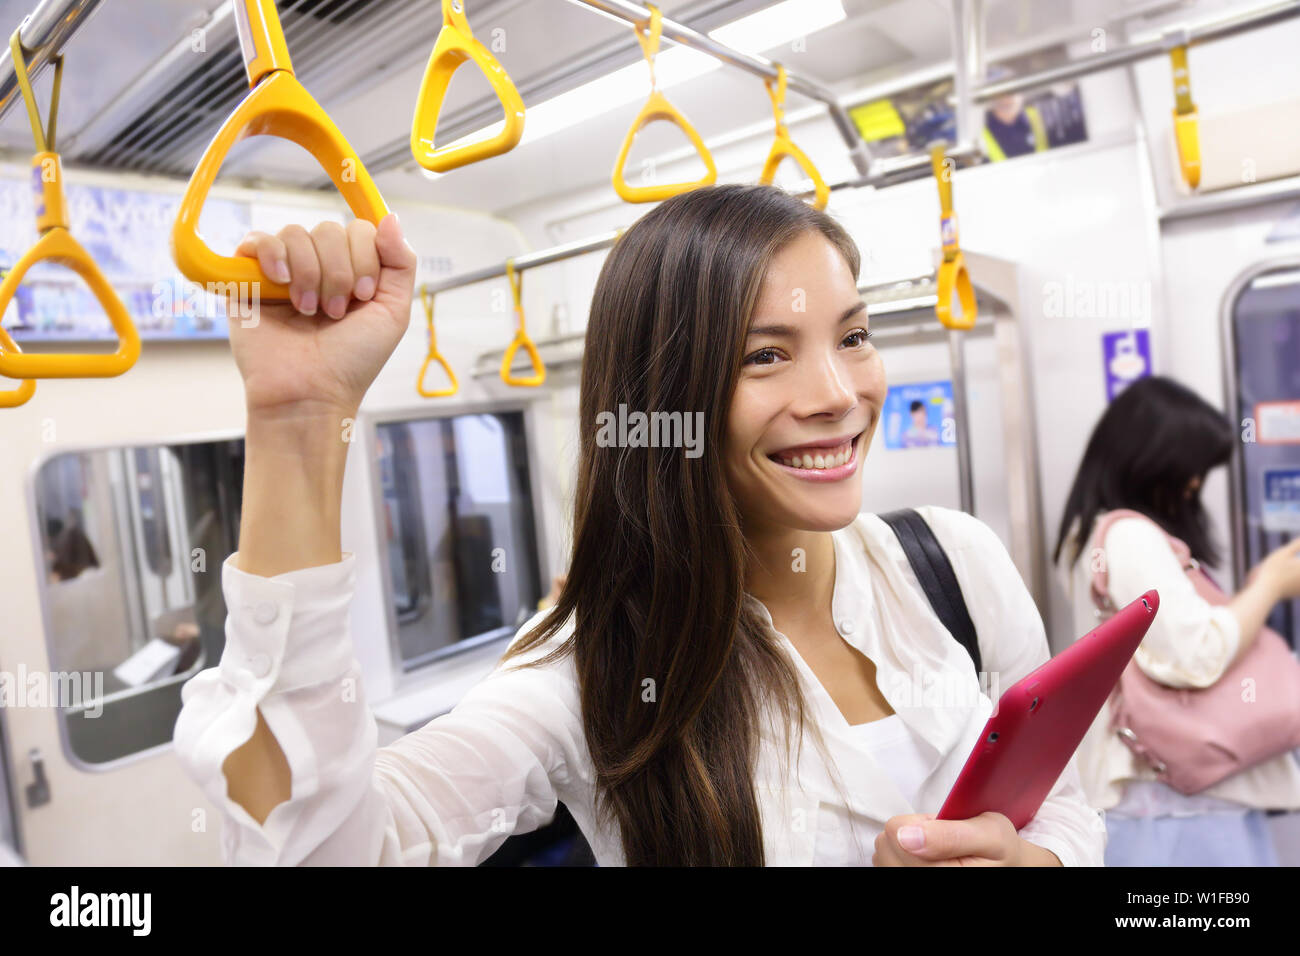 Subway commuter woman on Japanese public transport in Tokyo, Japan. Tourist using Japan's capital city metro system to commute. Portrait of happy asian lady holding handhold inside the wagon. Stock Photo